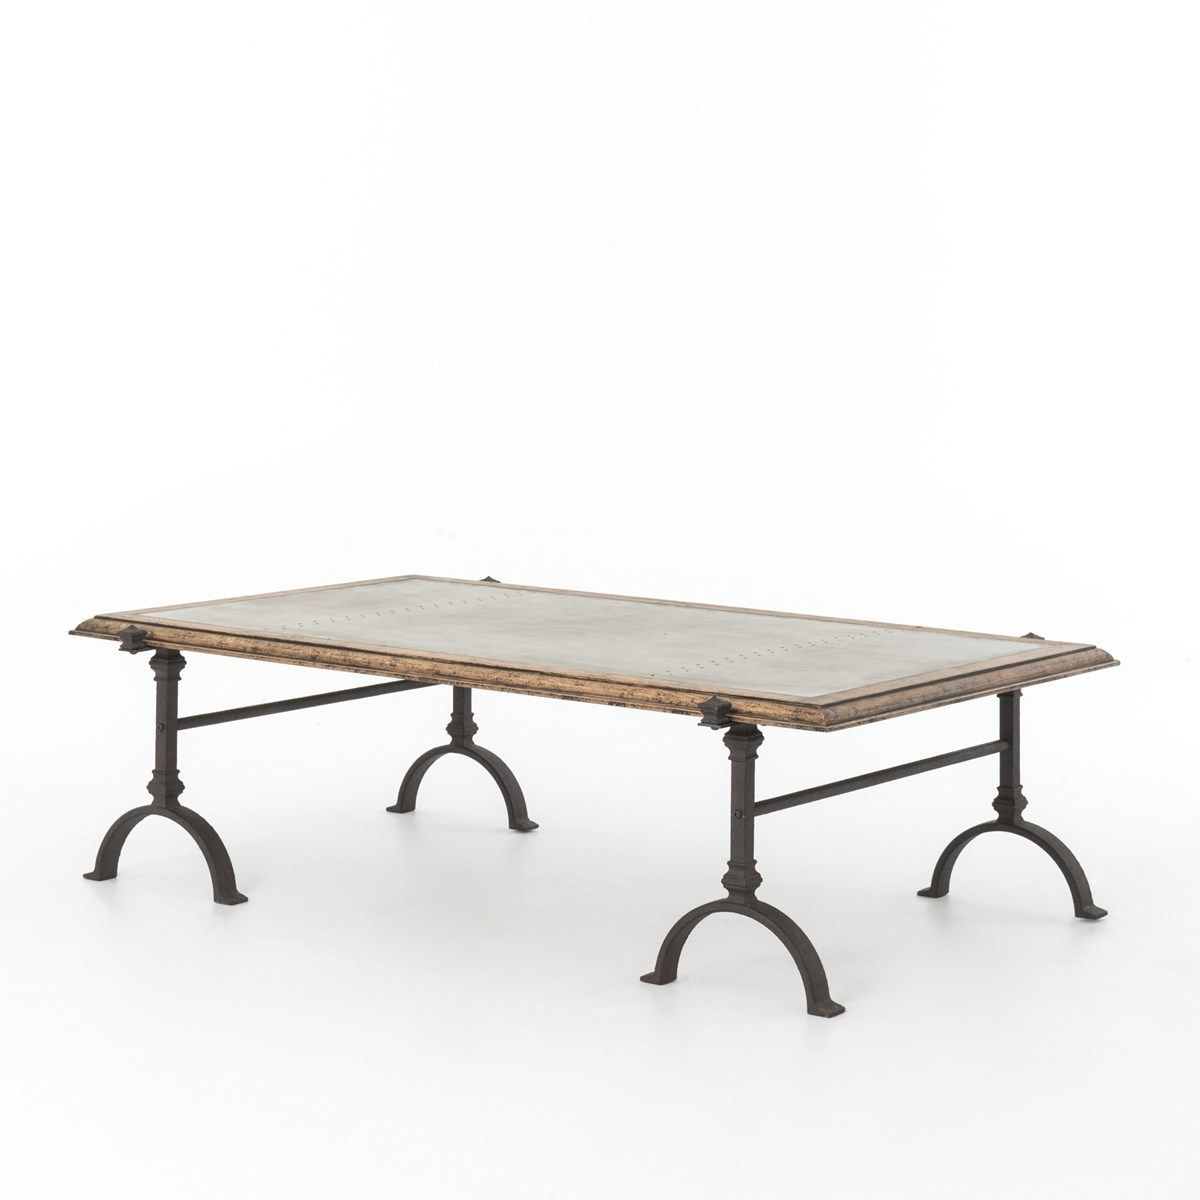 Galvanized Iron Rustic Oak Foundry Coffee Table 60""